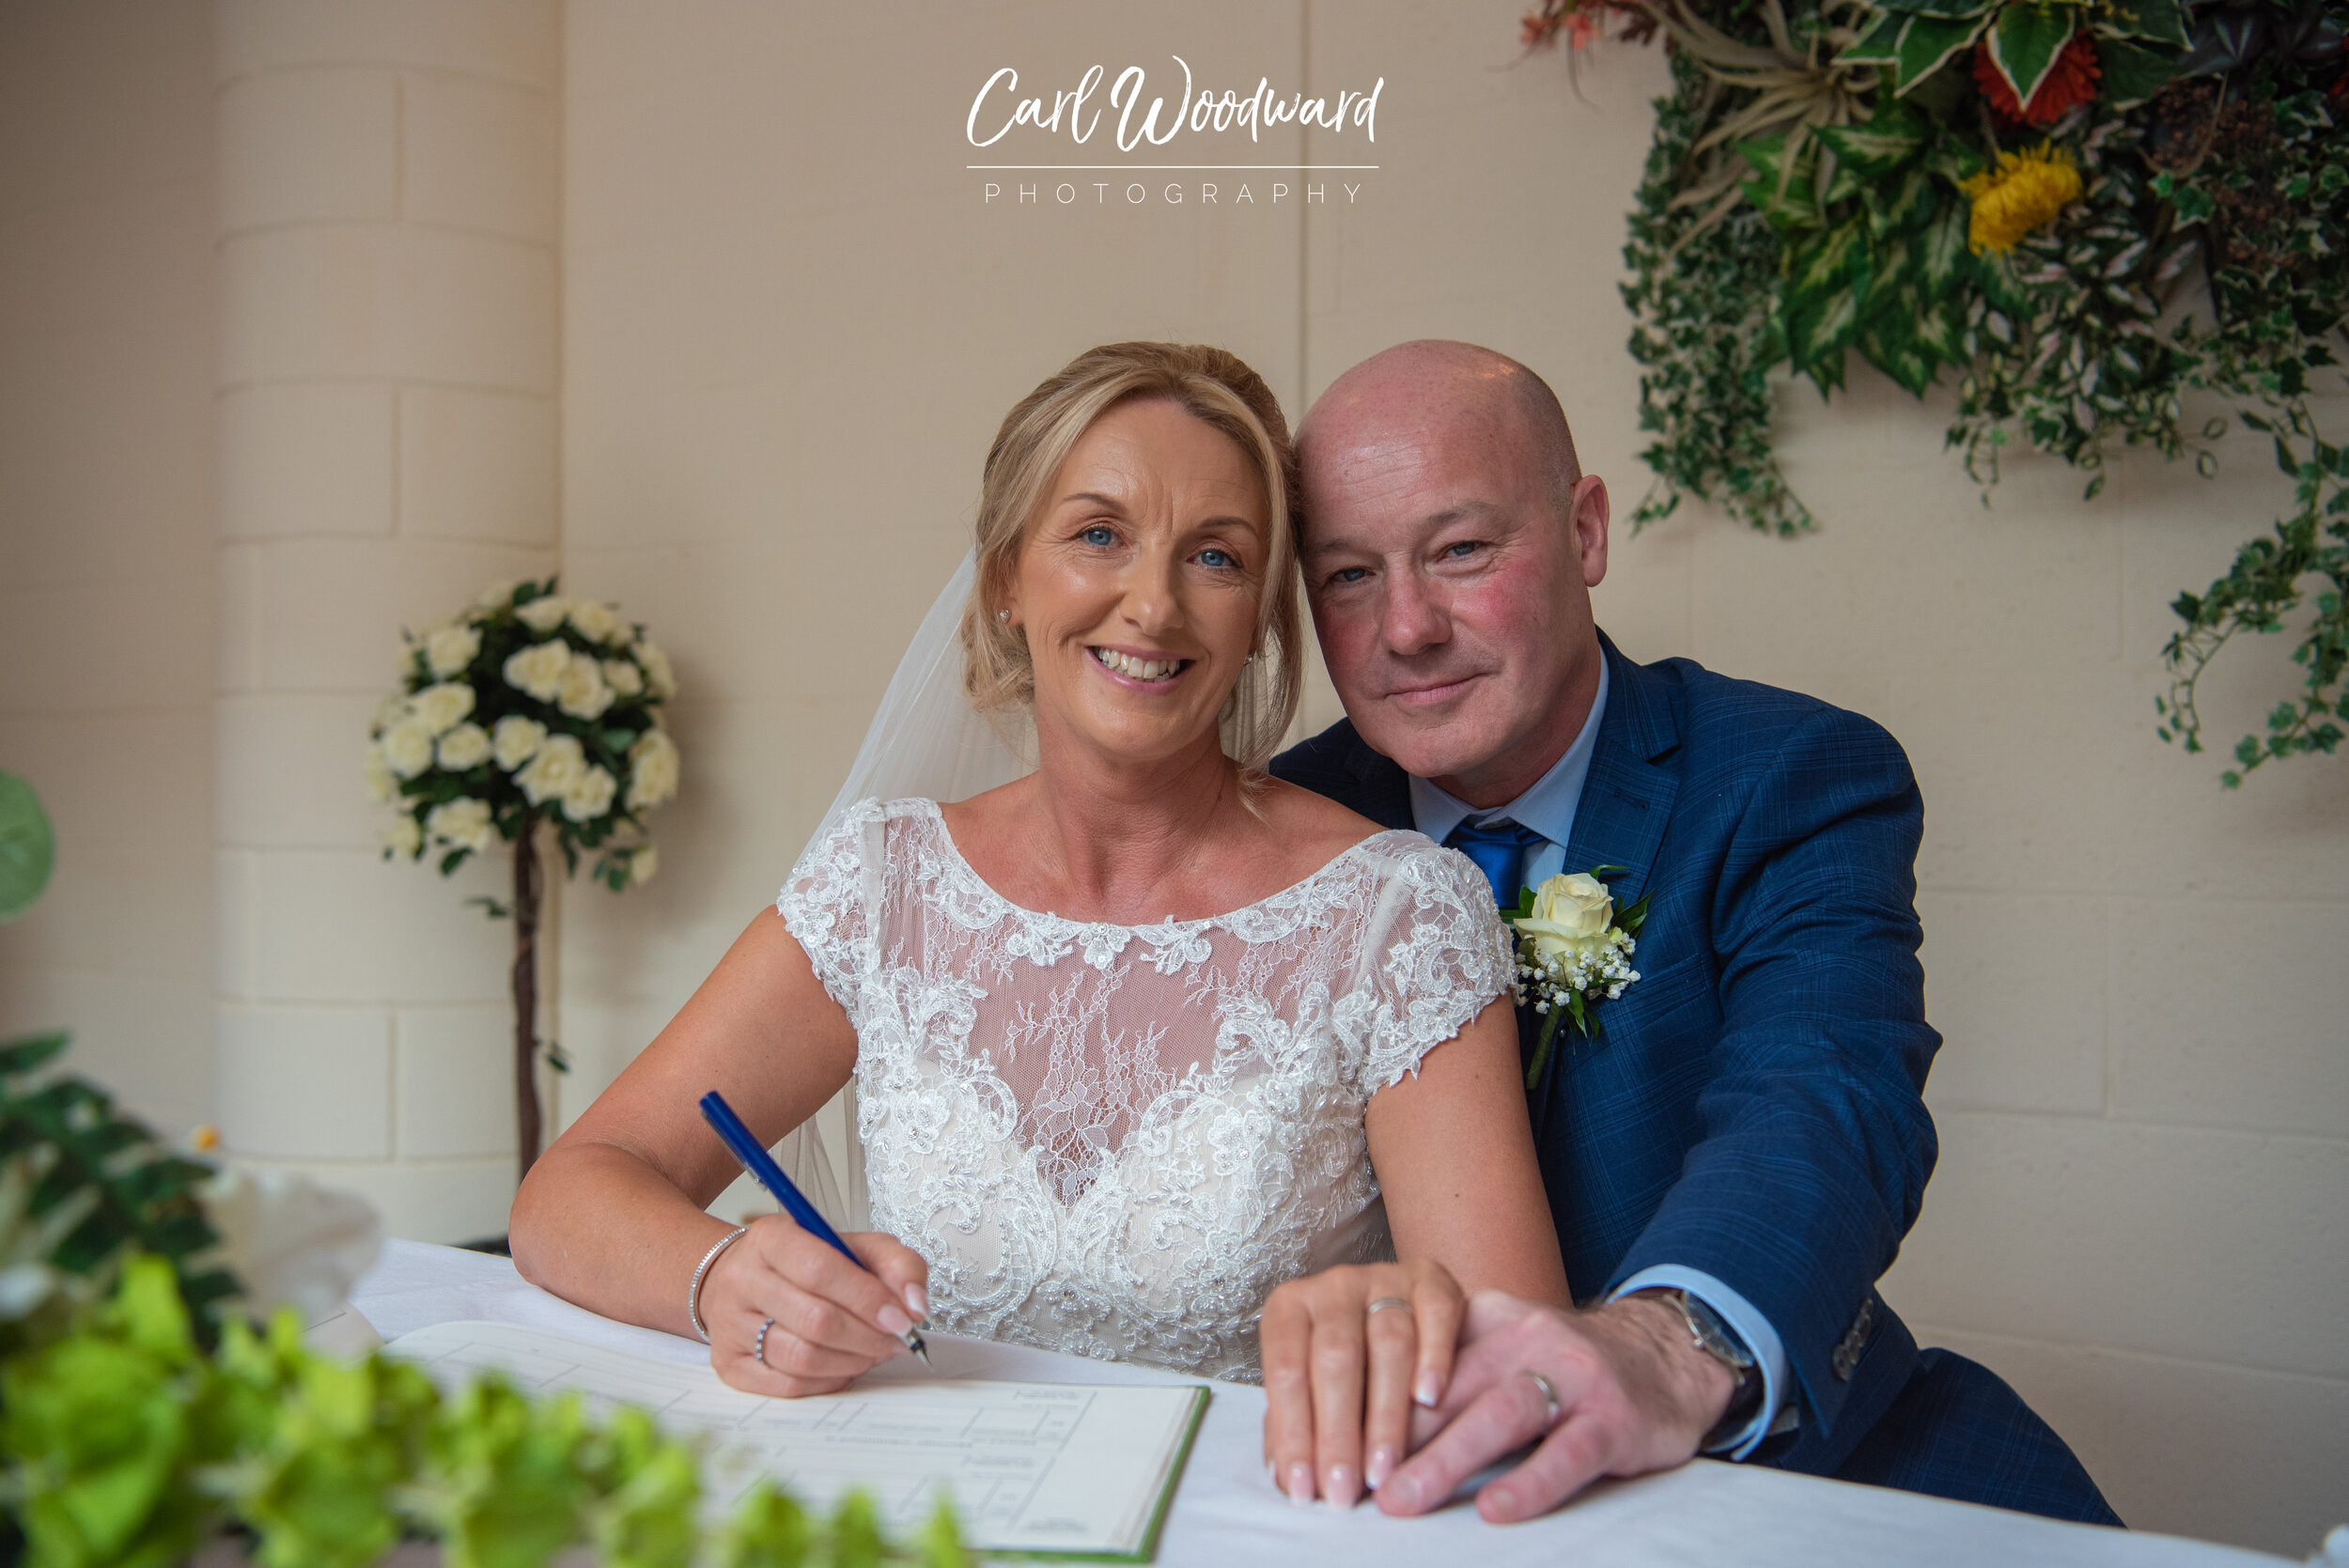 008-Cardiff-Wedding-Photographer-South-Wales-Wedding-Photography.jpg